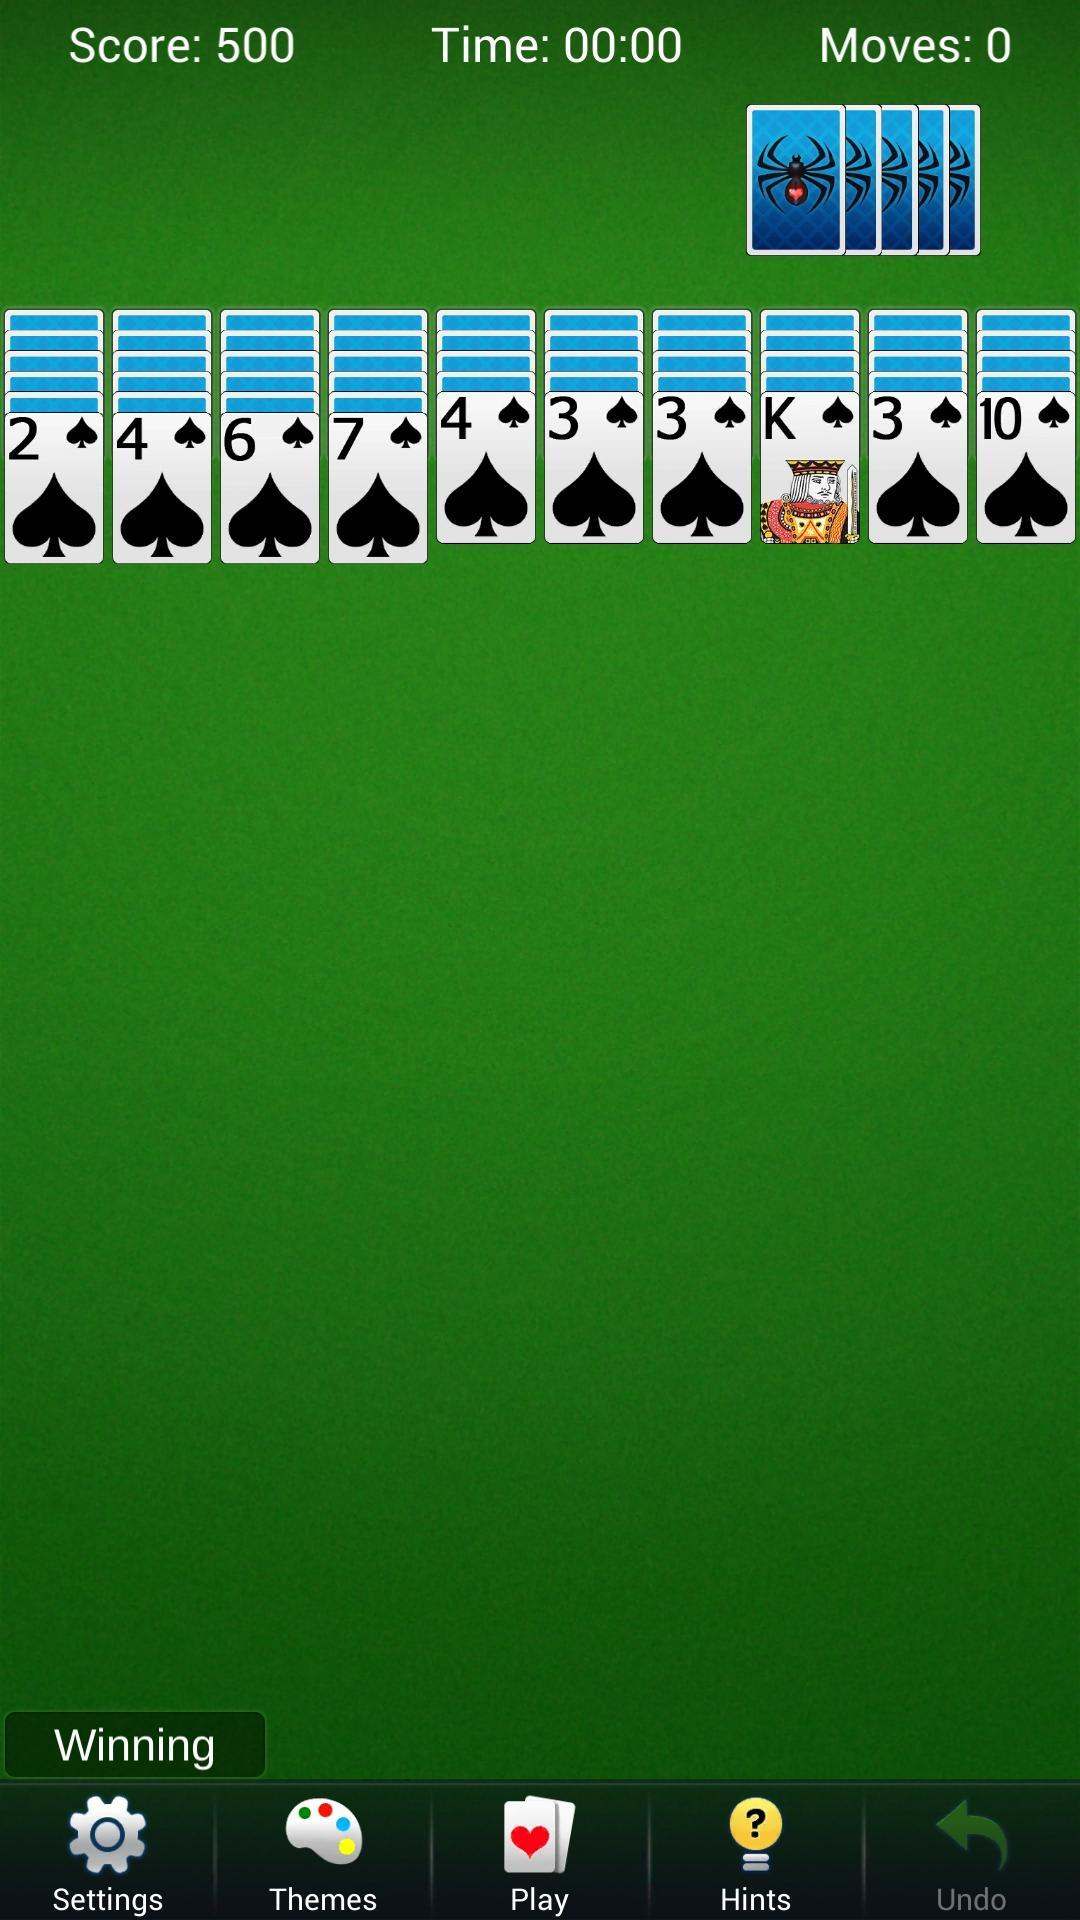 Spider Solitaire - Best Classic Card Games 1.8.0.20210225 Screenshot 4